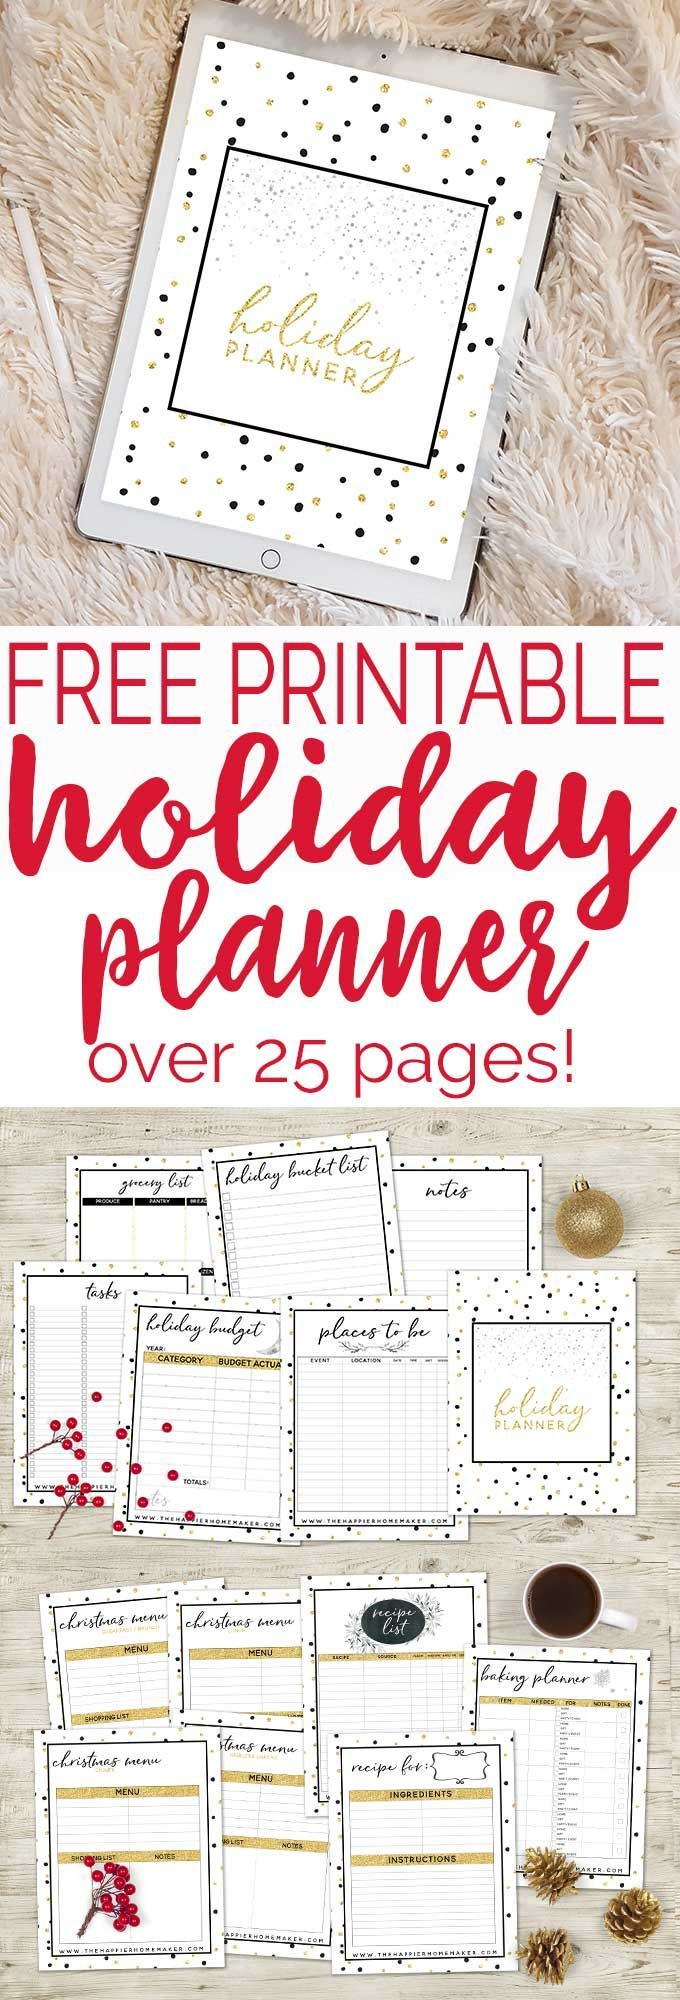 Free printable Complete Holiday Planner! Over 25 pages of everything you need to make this holiday season organized and stress-free!